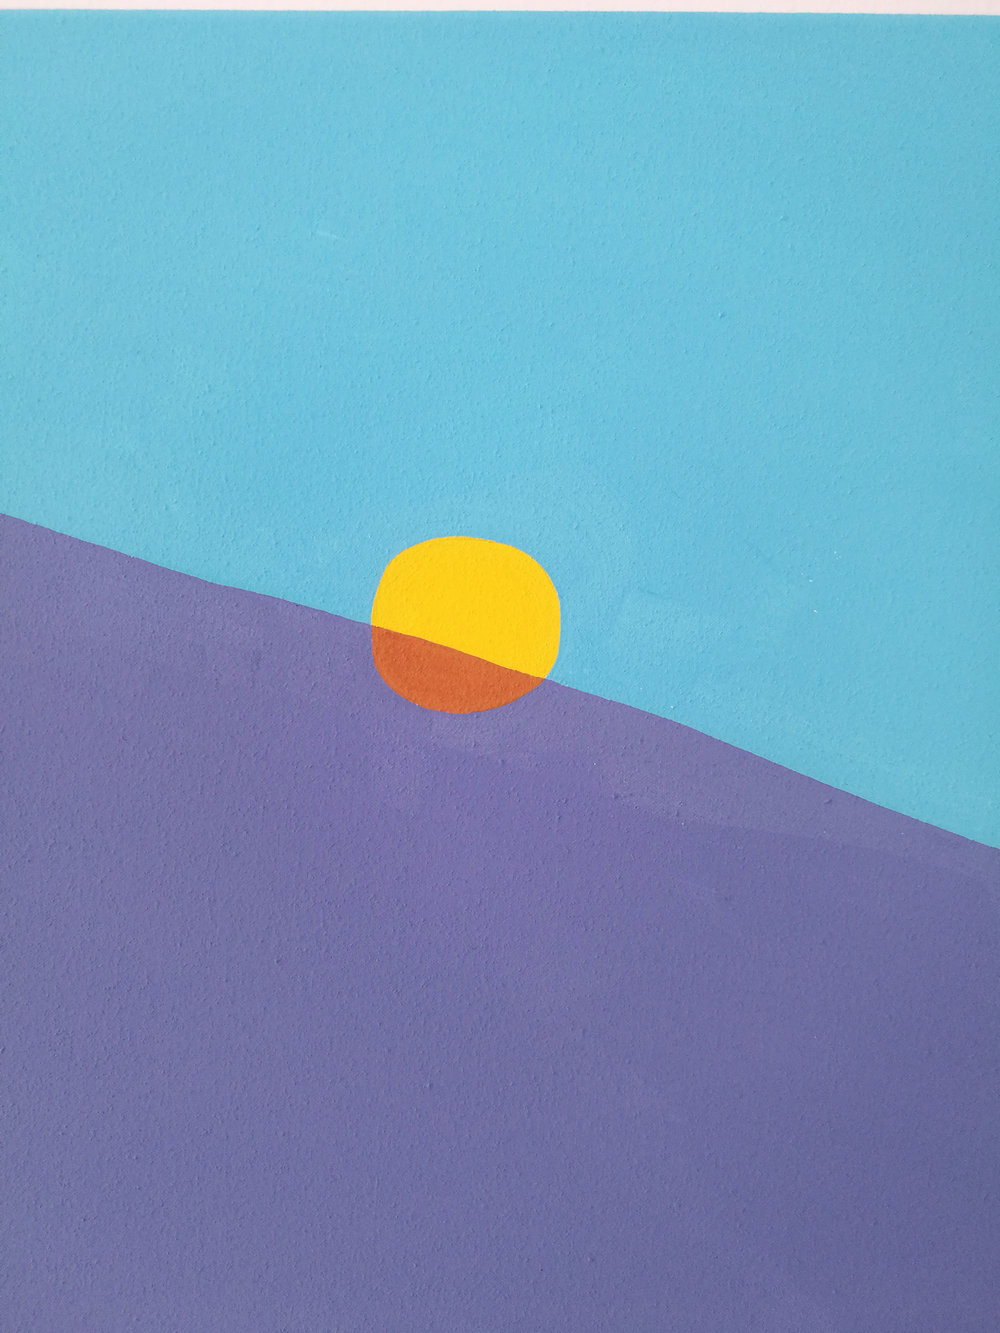 Peter McDonald_Sun 2_Acrylic gouache on canvas_50x40cm_2018_detailshot copy.jpg